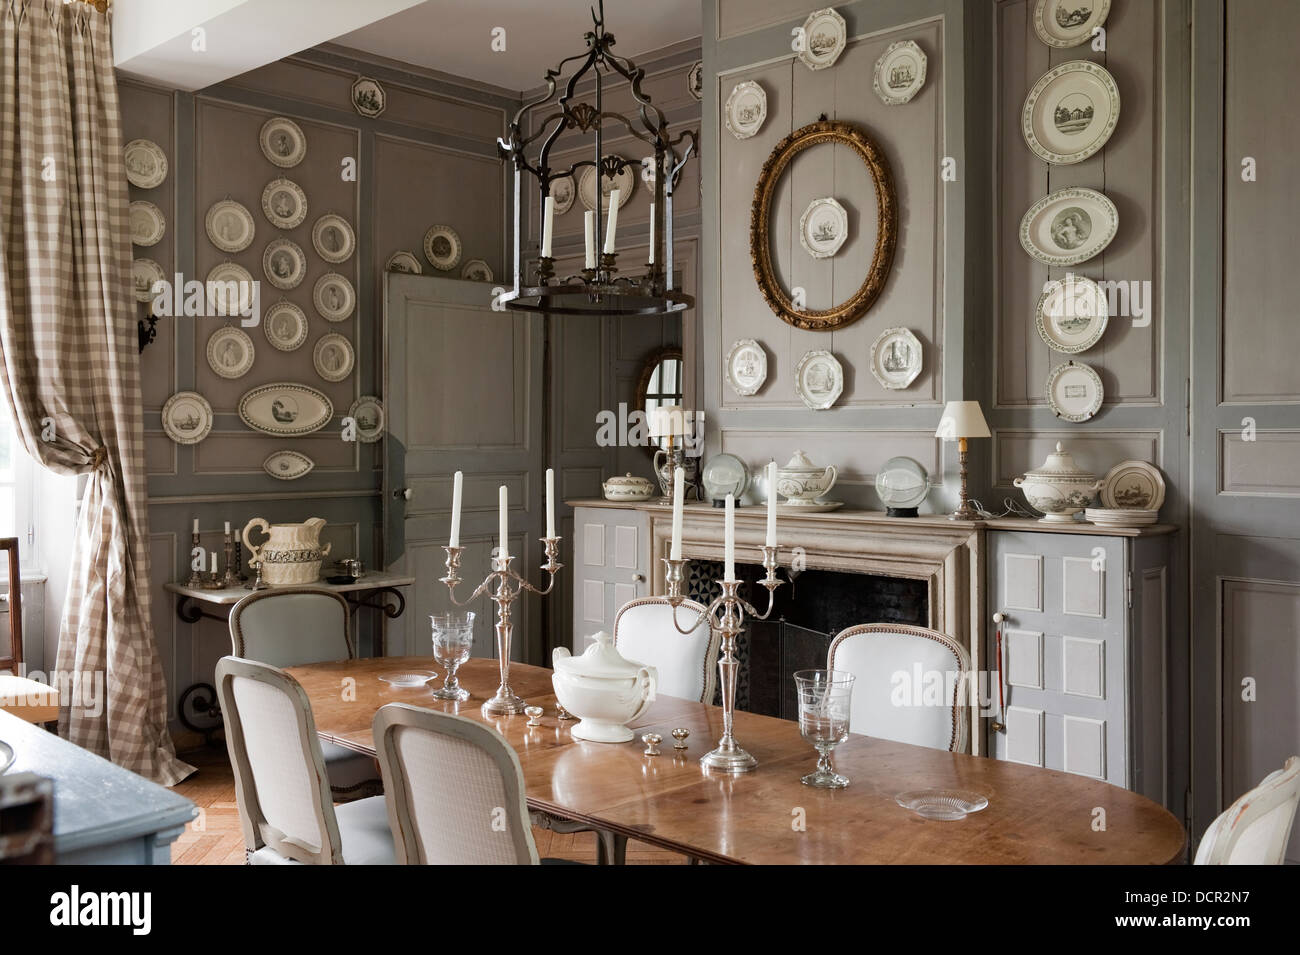 elegant dining rooms. French antique chairs and table in elegant dining room with wood wall  panelling decorative plates